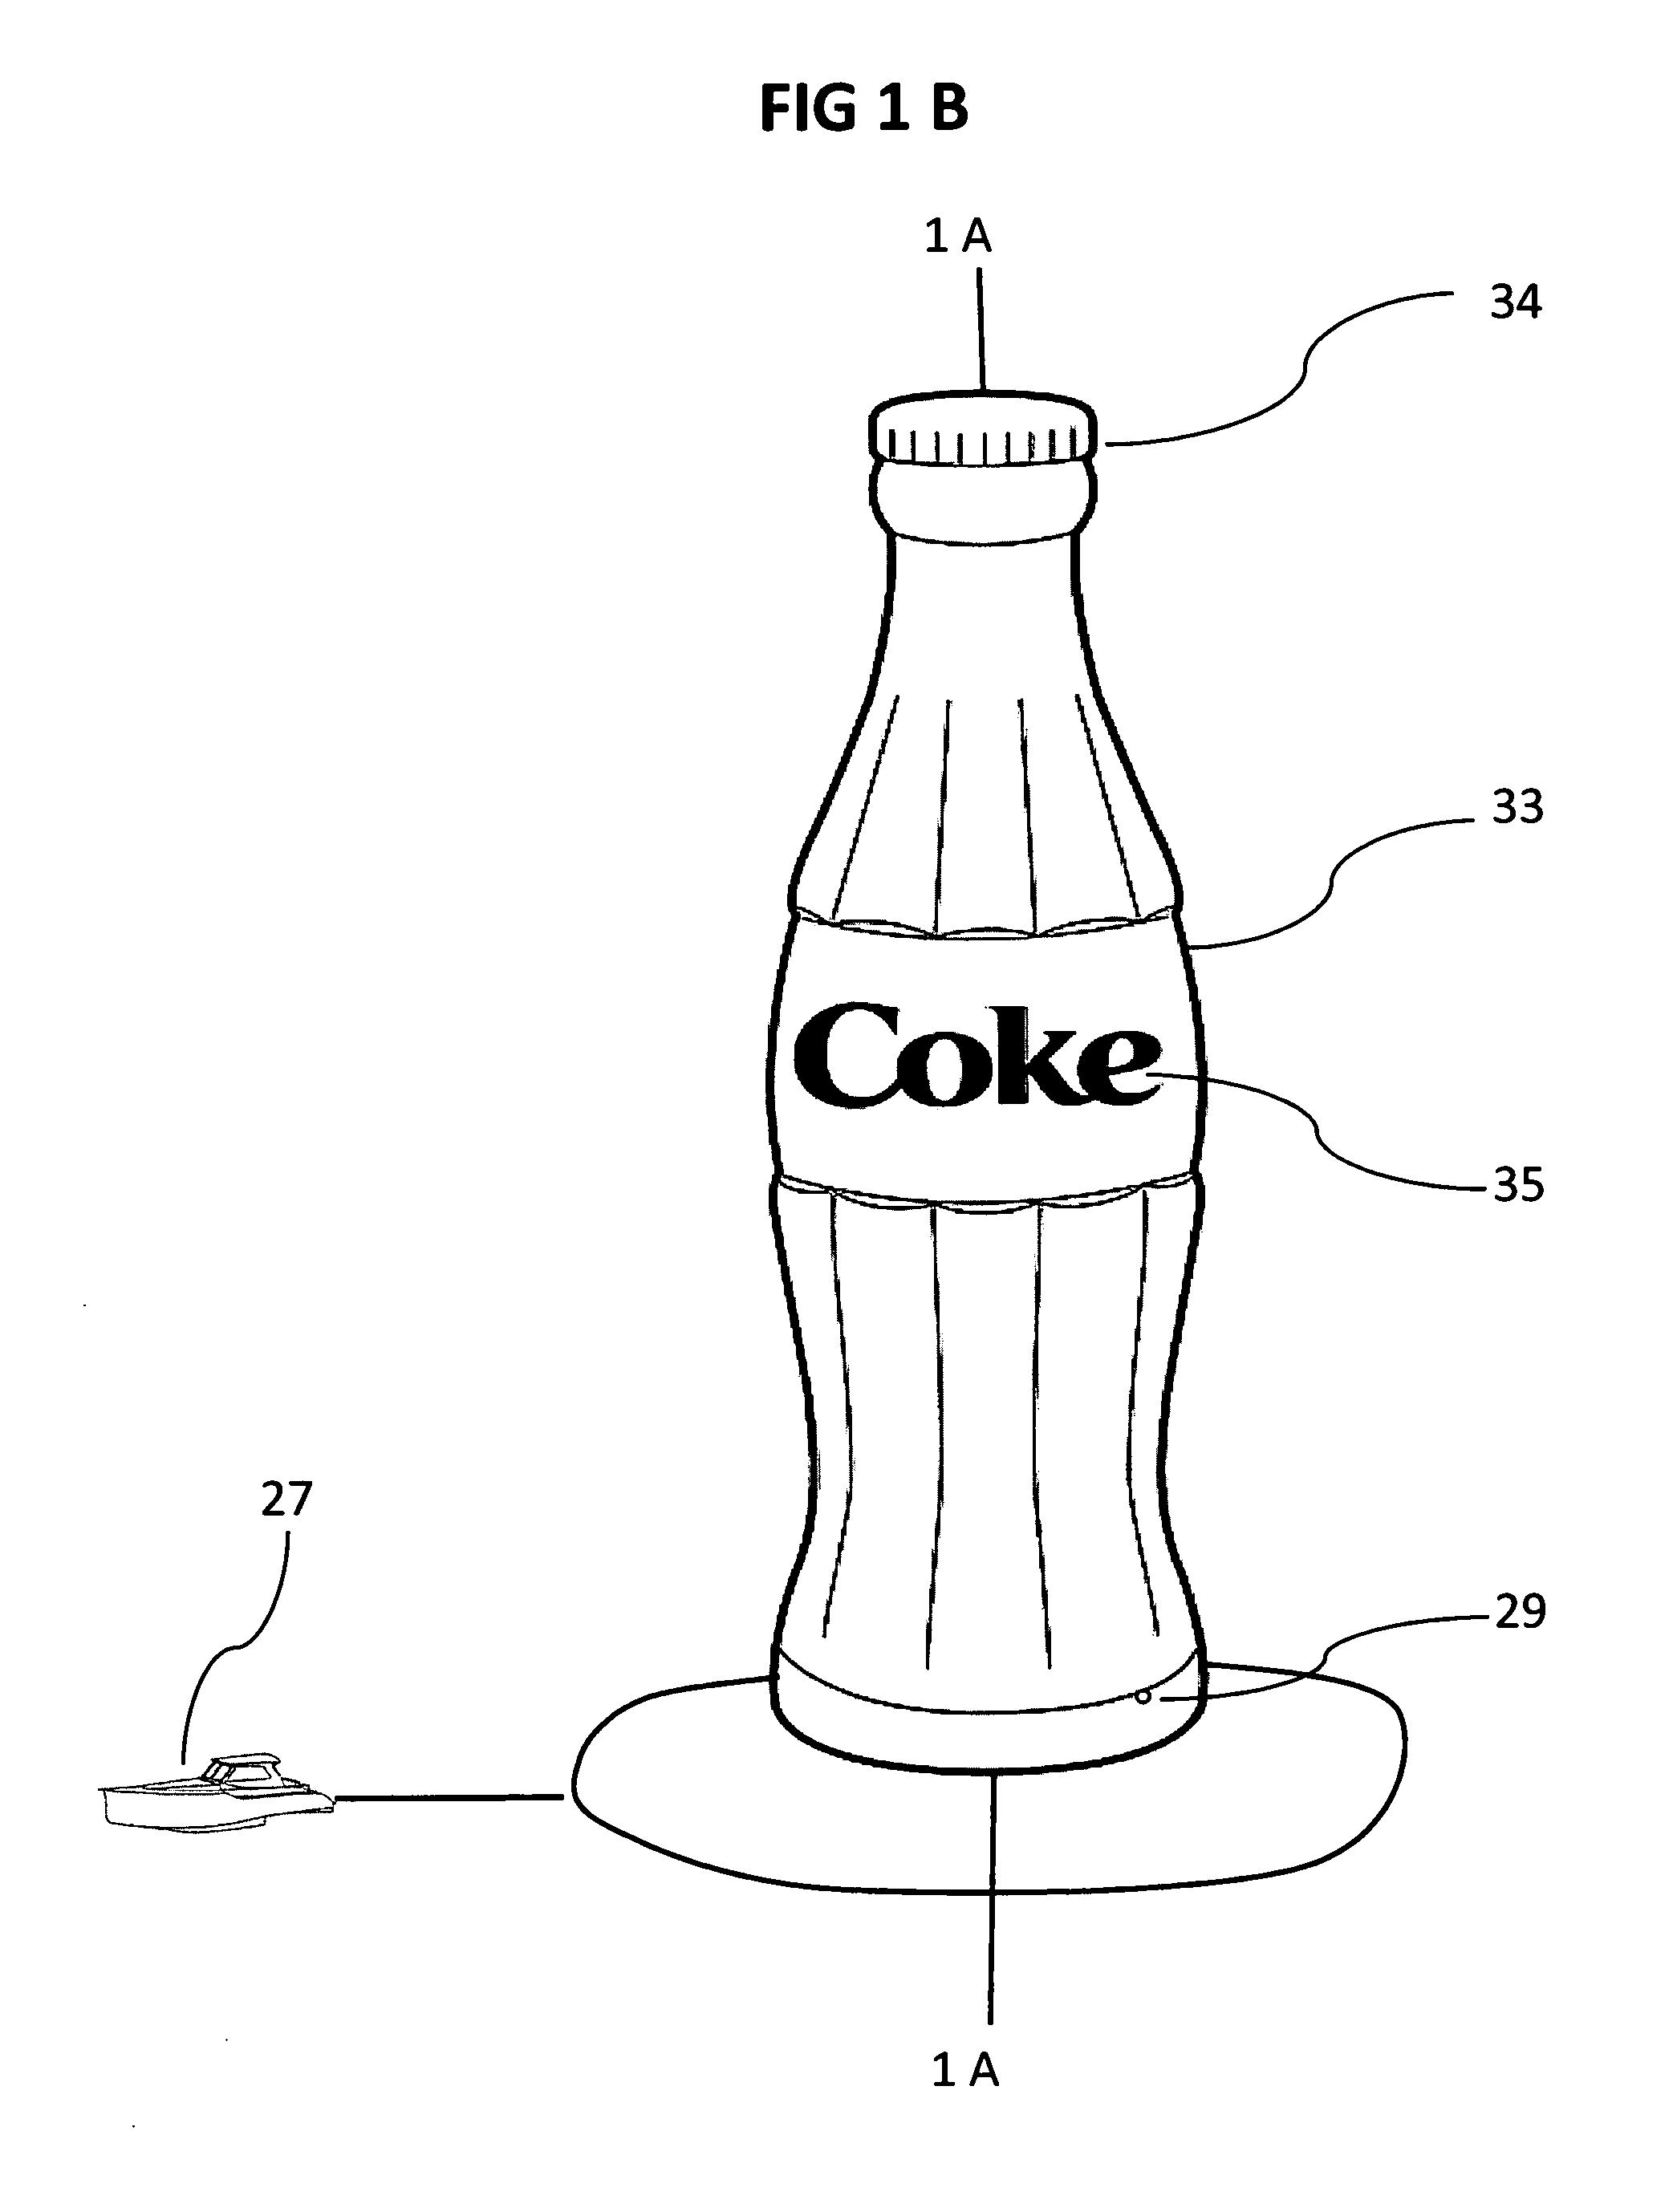 Coke Bottle Outline Patent US20130014413 -...